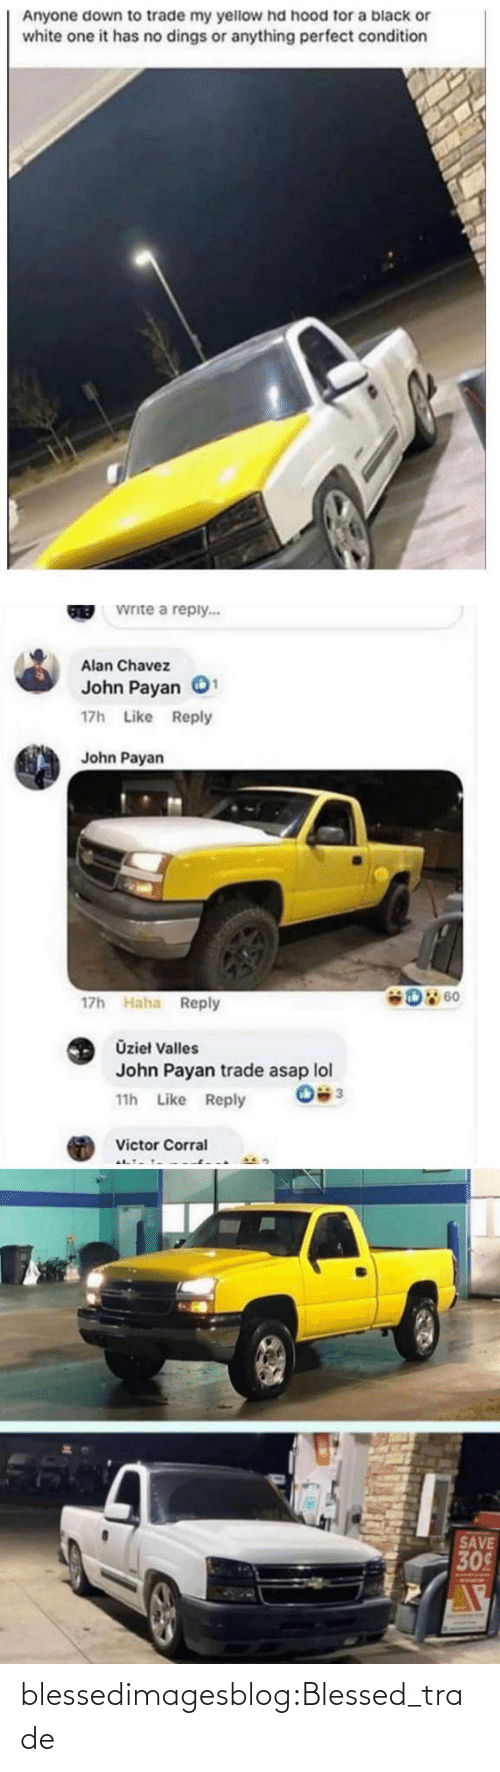 alan: Anyone down to trade my yellow hd hood for a black or  white one it has no dings or anything perfect condition  Write a reply...  GREB  Alan Chavez  John Payan  17h Like Reply  John Payan  D 60  17h Haha Reply  Üzieł Valles  John Payan trade asap lol  11h Like Reply  Victor Corral  SAVE  309 blessedimagesblog:Blessed_trade